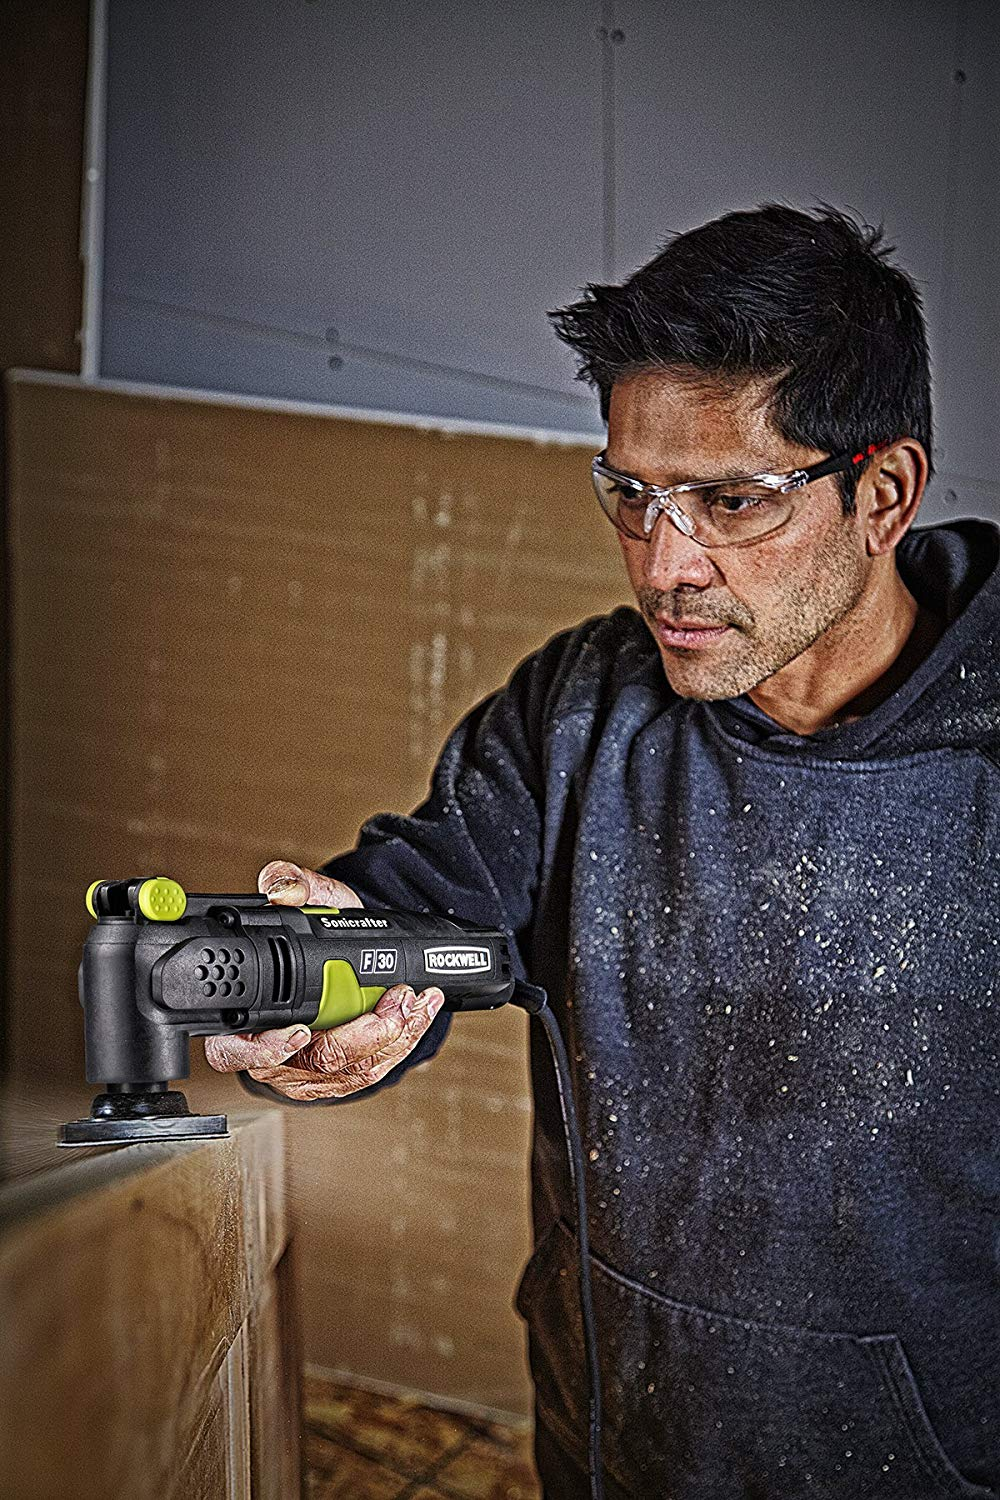 Rockwell Sonicrafter F30 Oscillating Multi-Tool